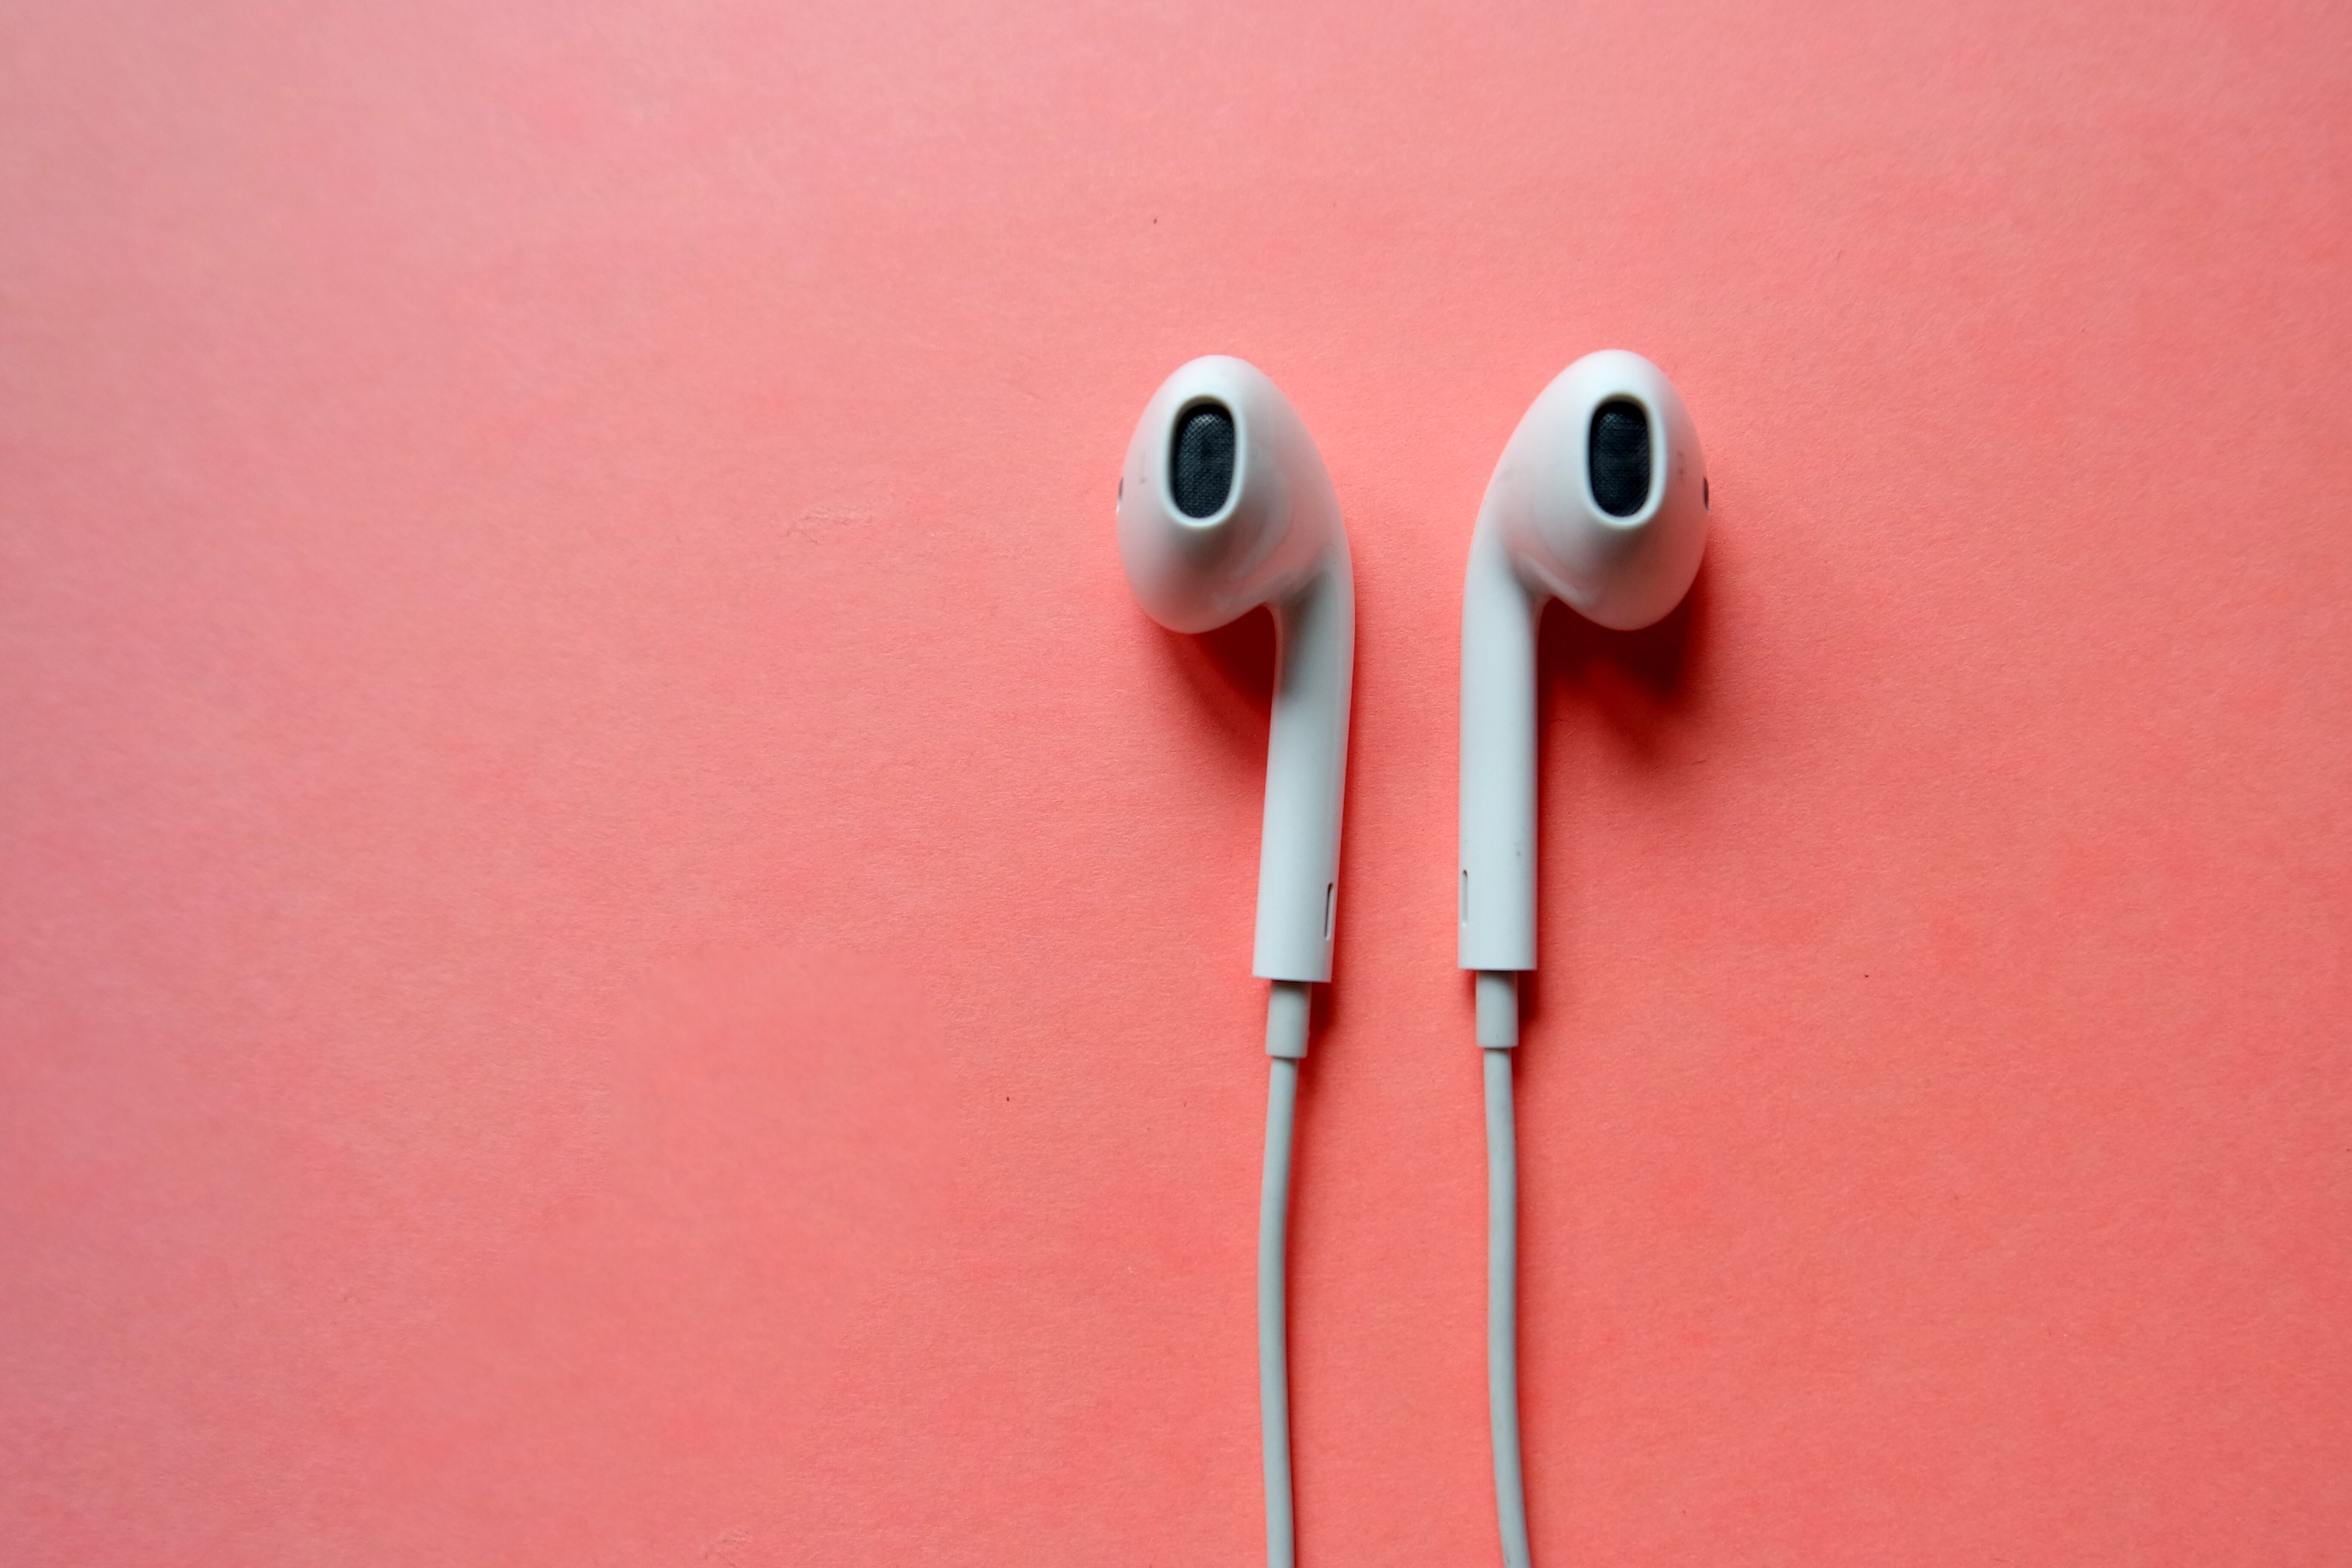 mejores auriculares 2019